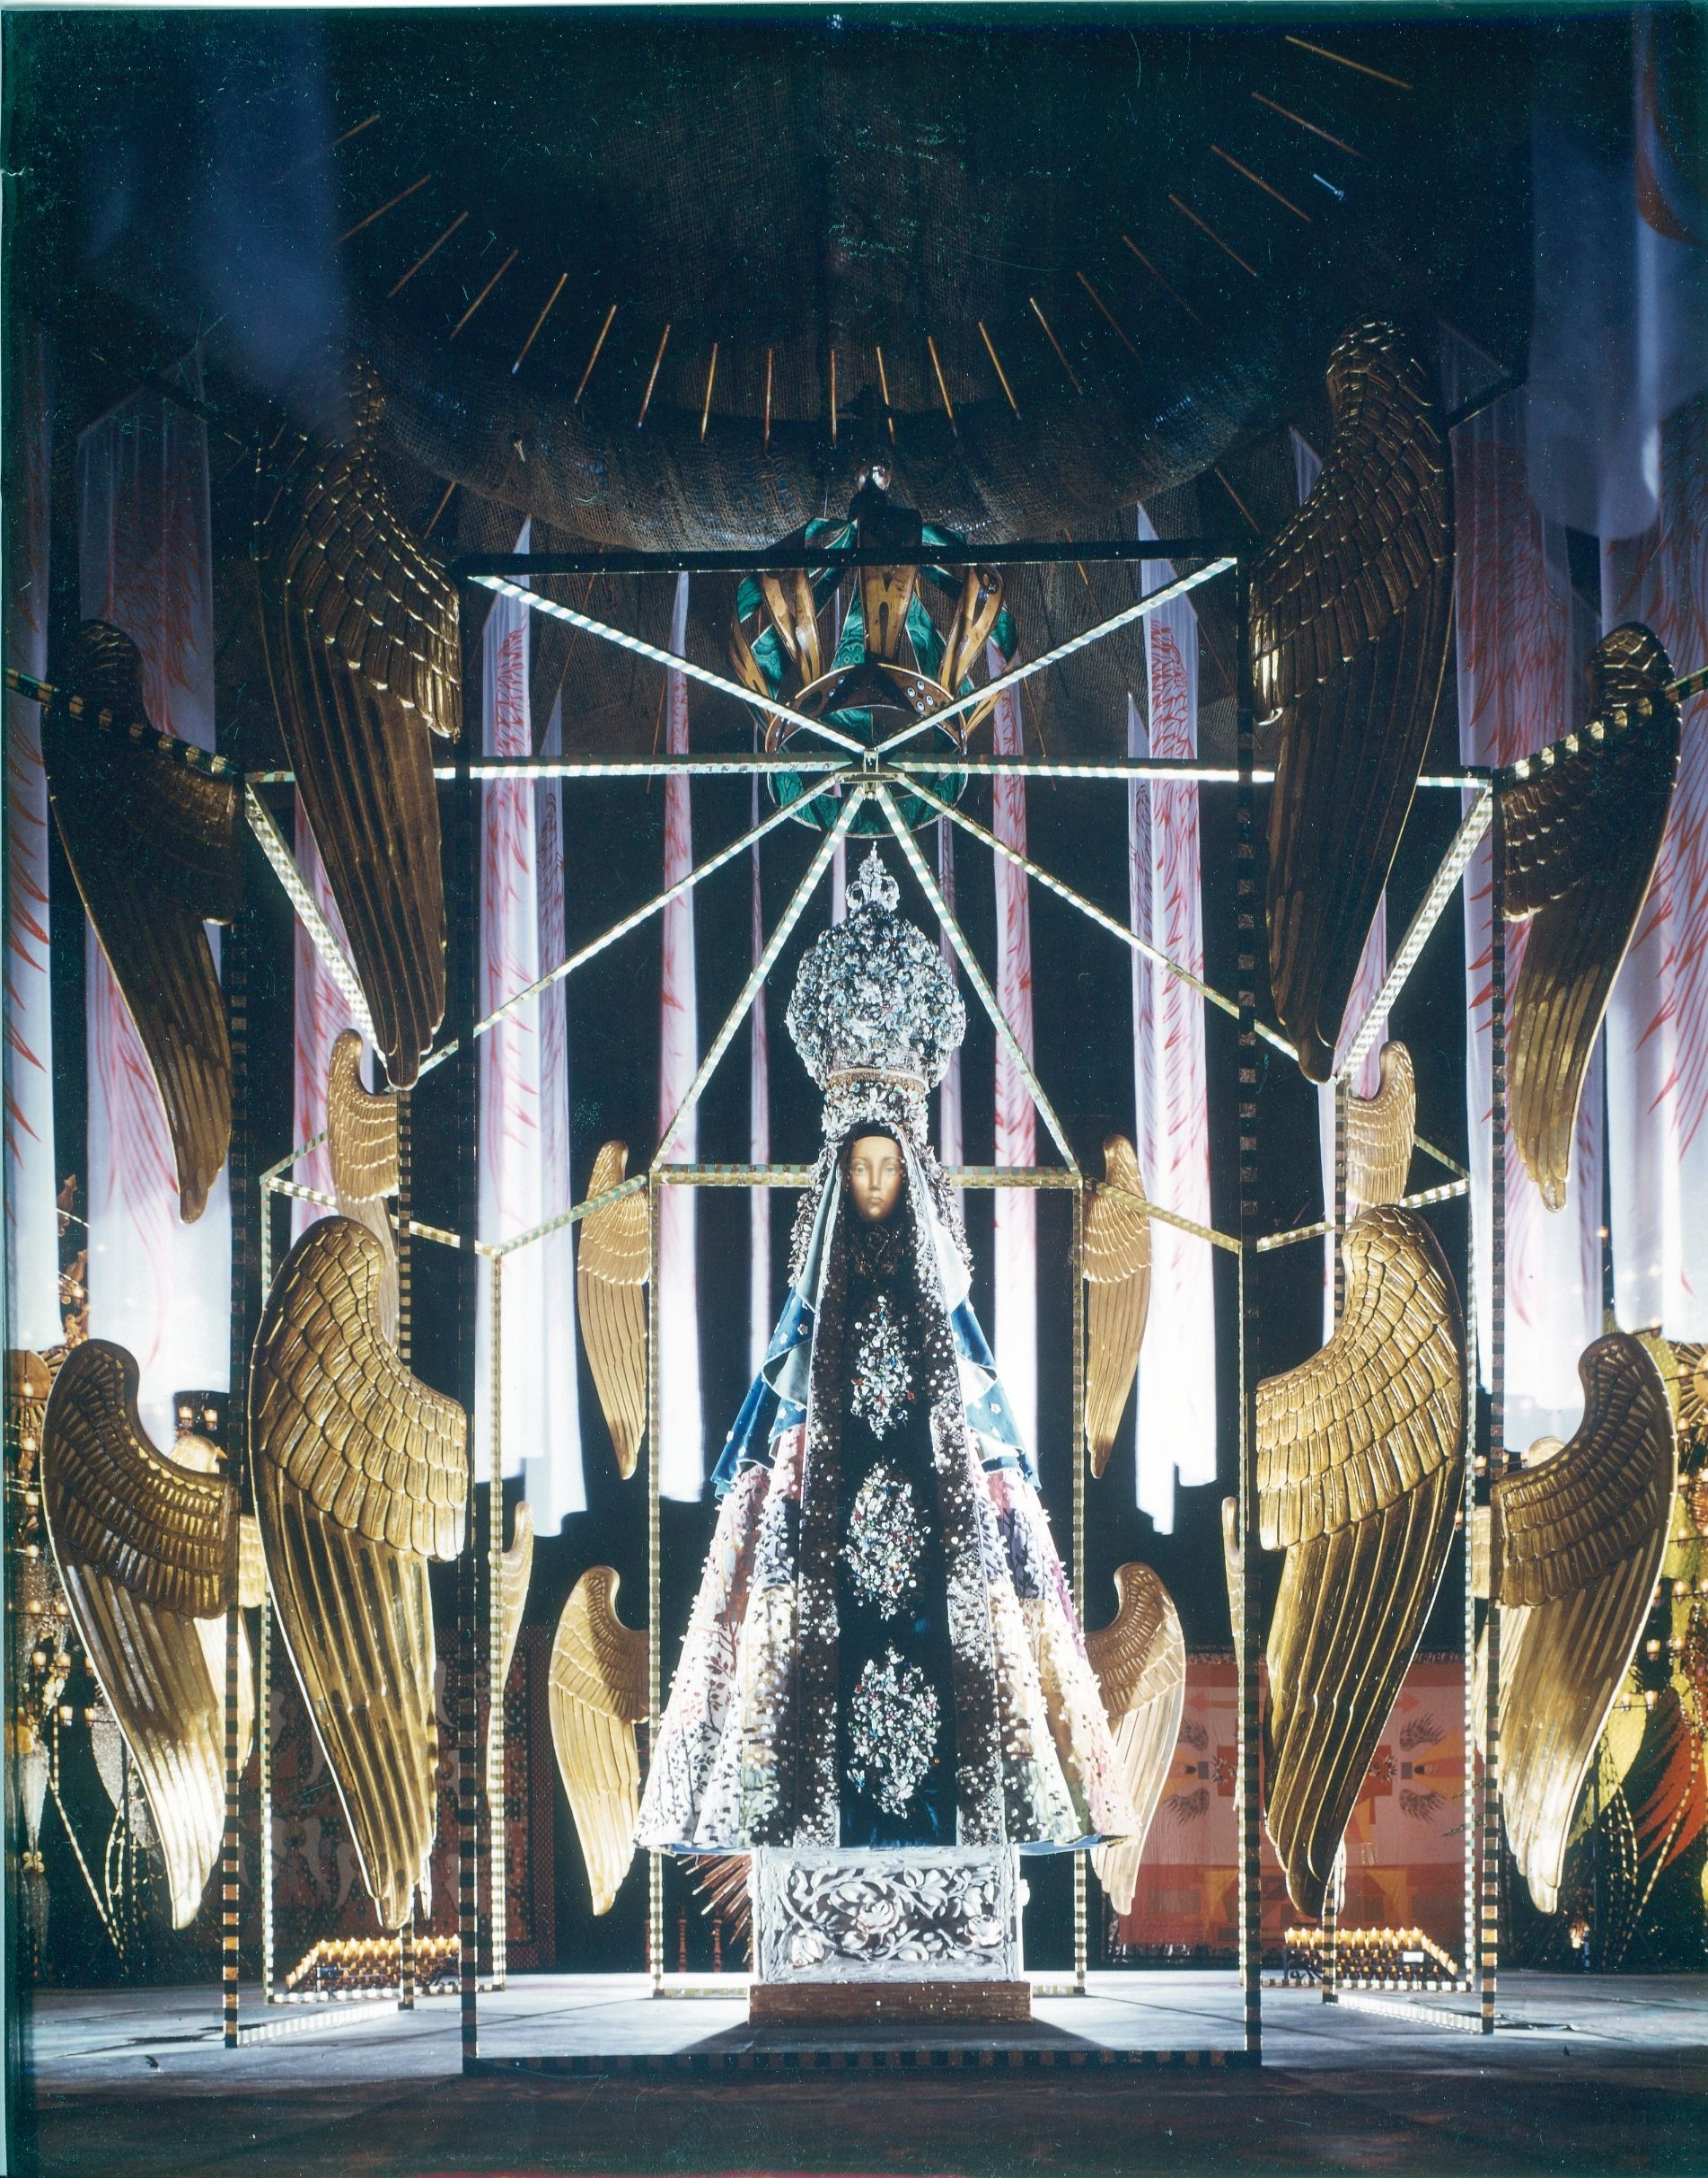 Our Lady Queen Of The Angels Created By Tony Duquette As A Gift To